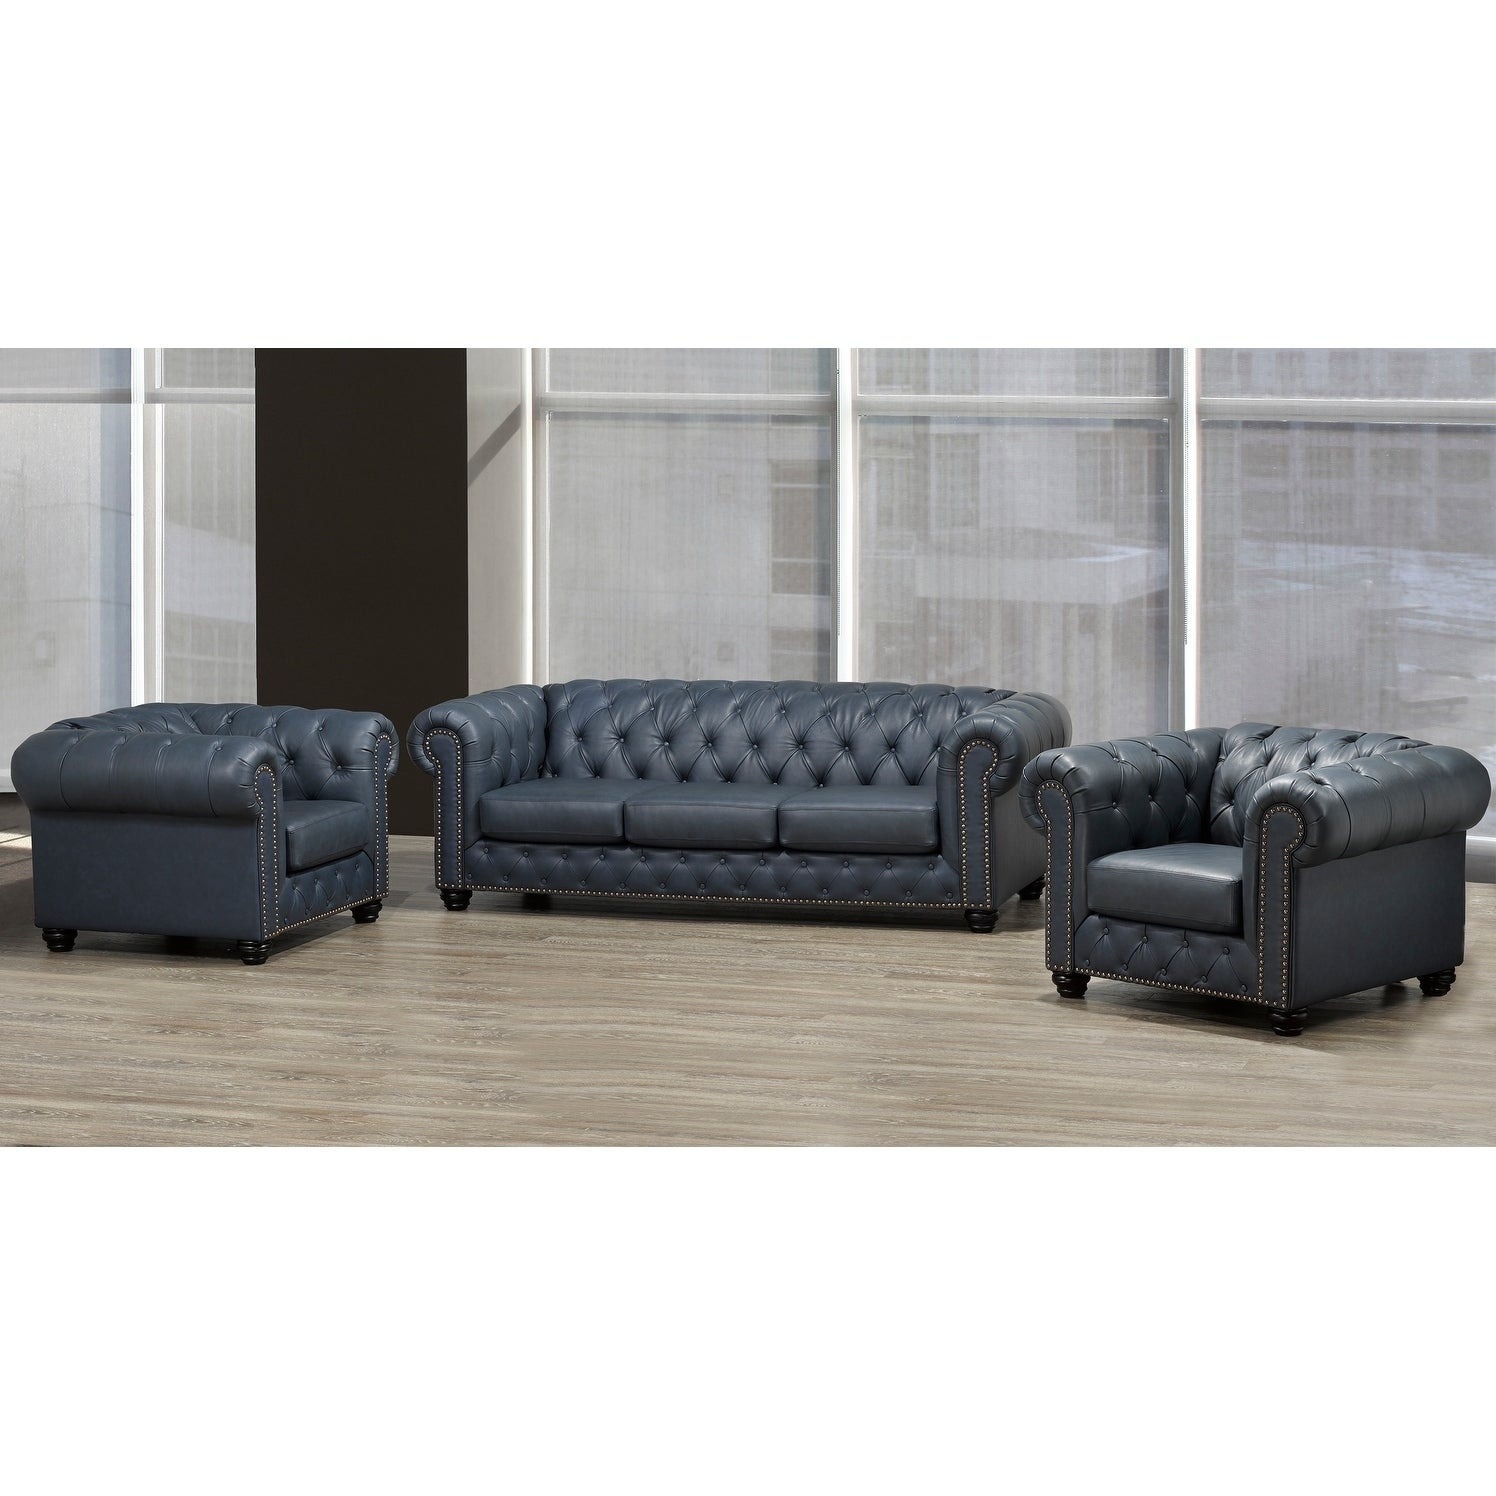 Shop Wigan Top Grain Leather Sofa and Two Chair Set - Free Shipping ...